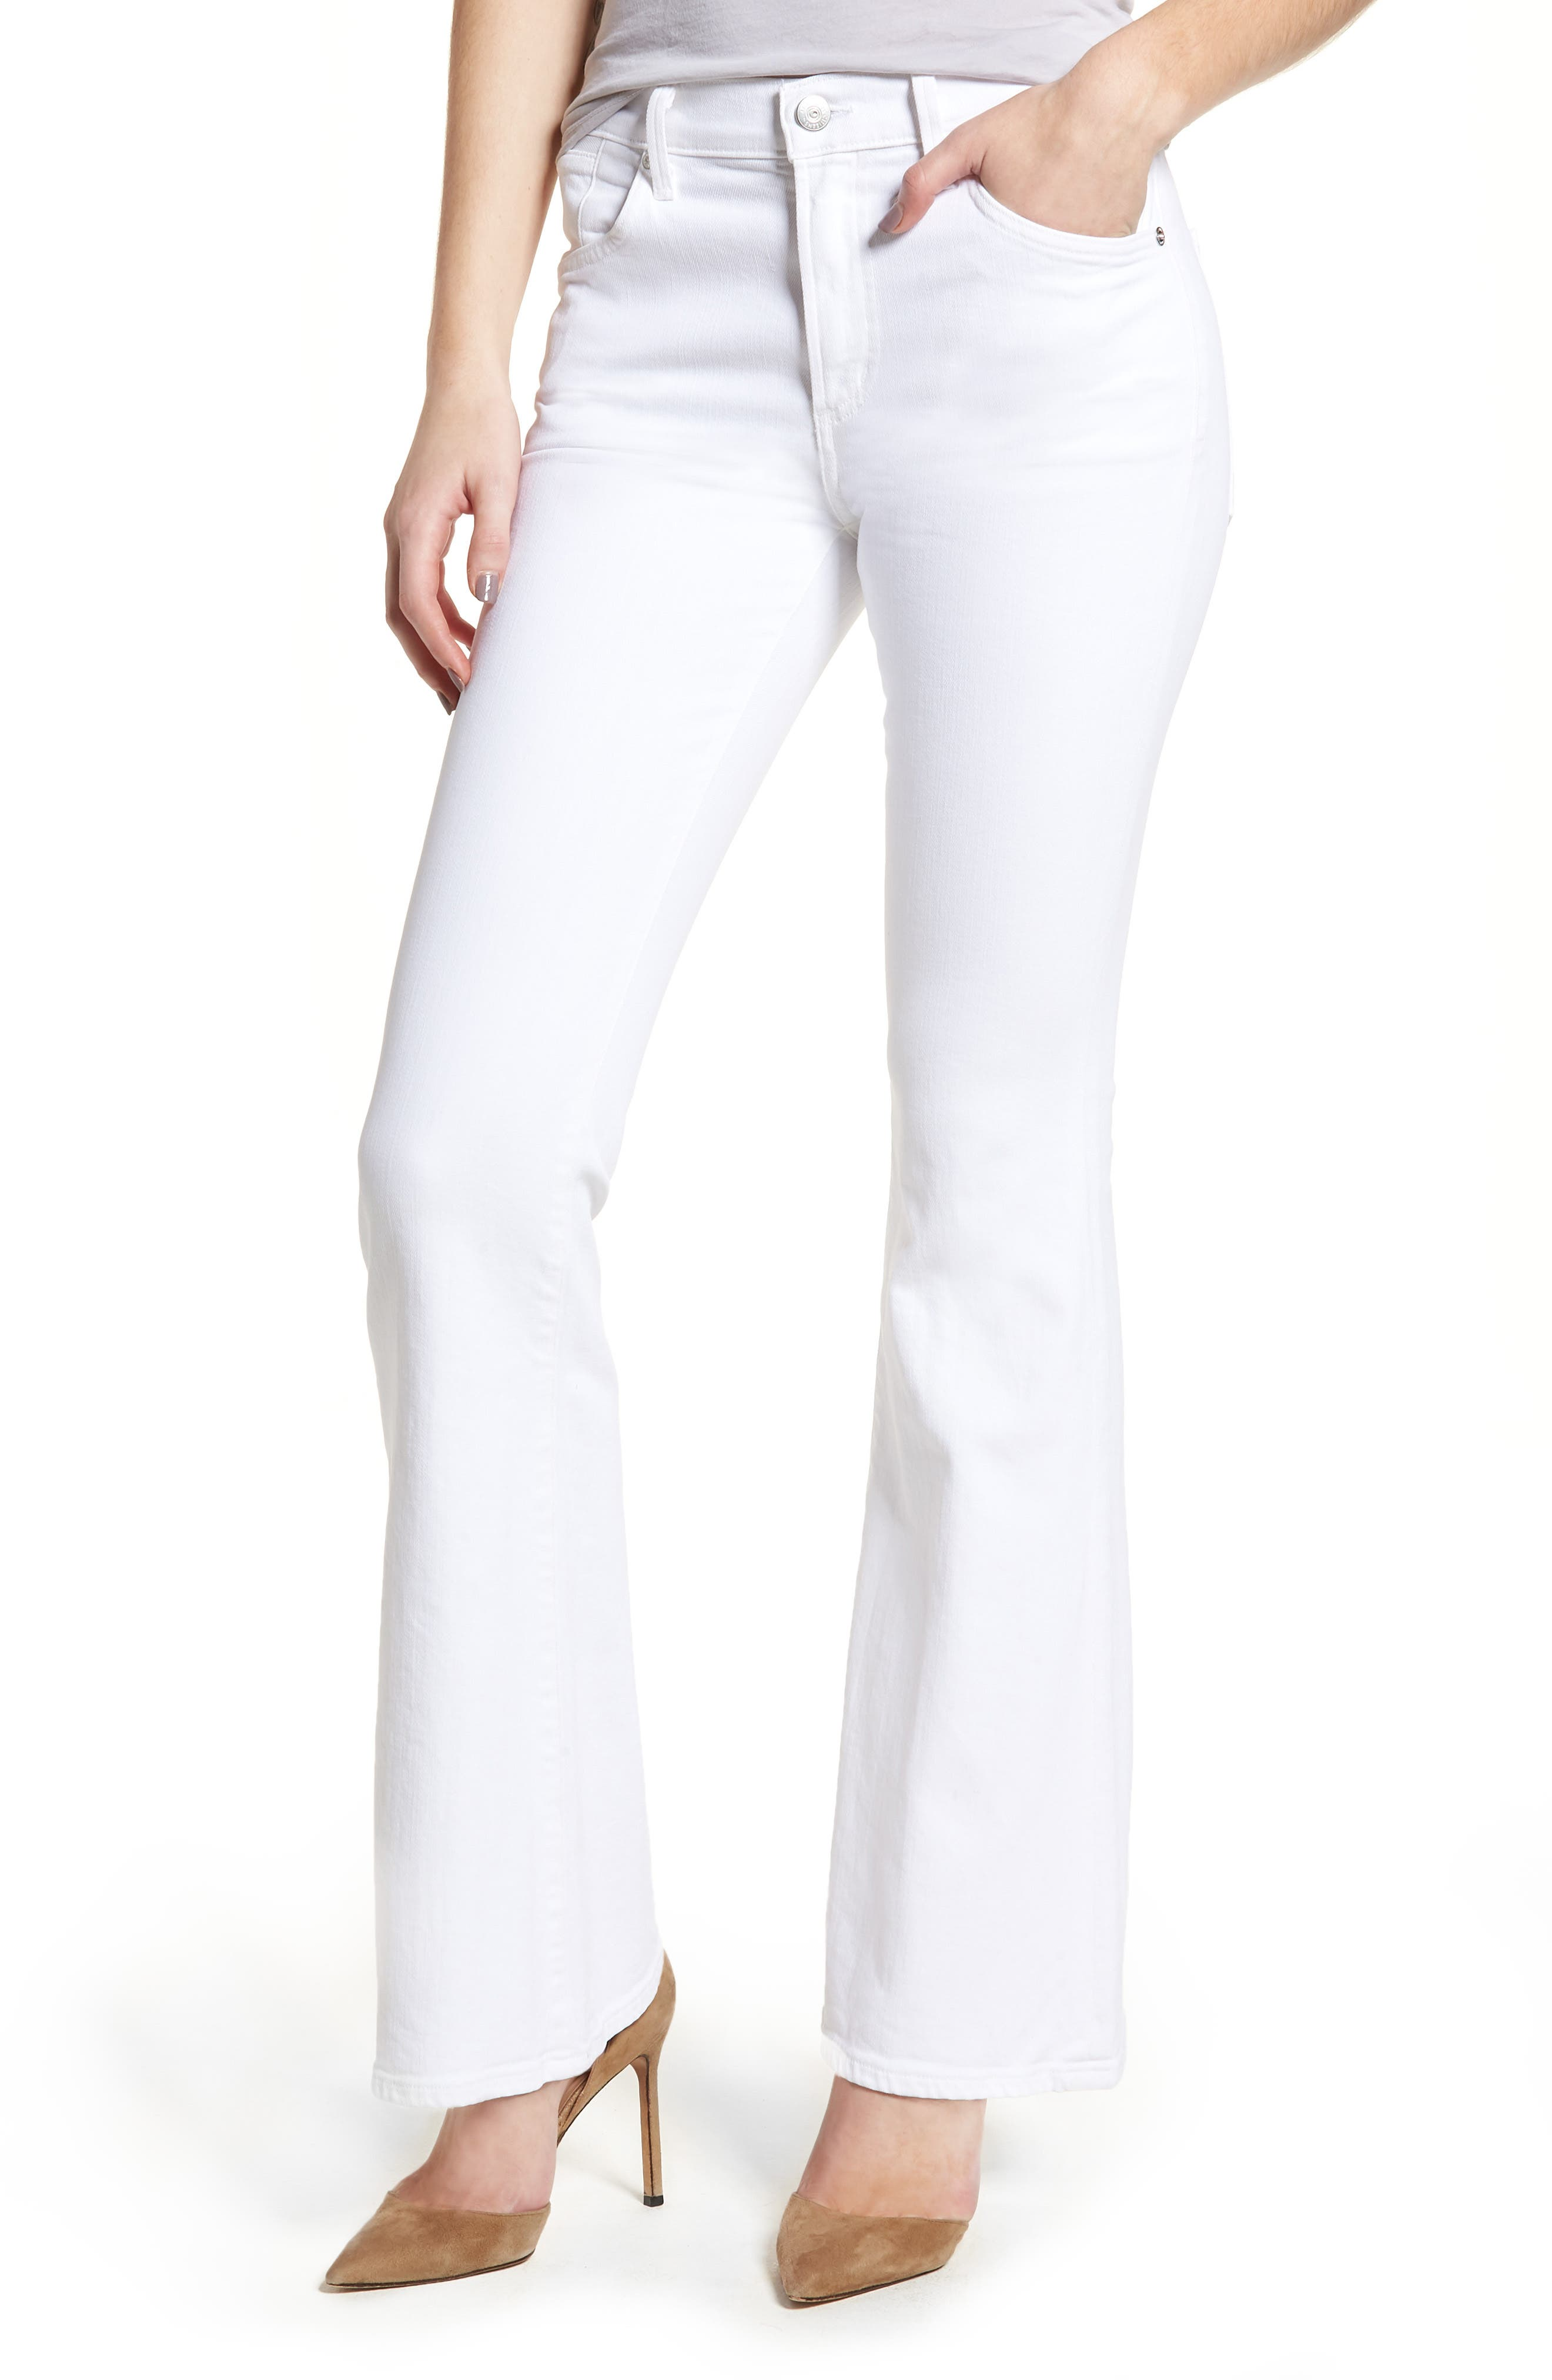 Citizens of Humanity Fleetwood Flare Jeans (Optic White) (Petite)